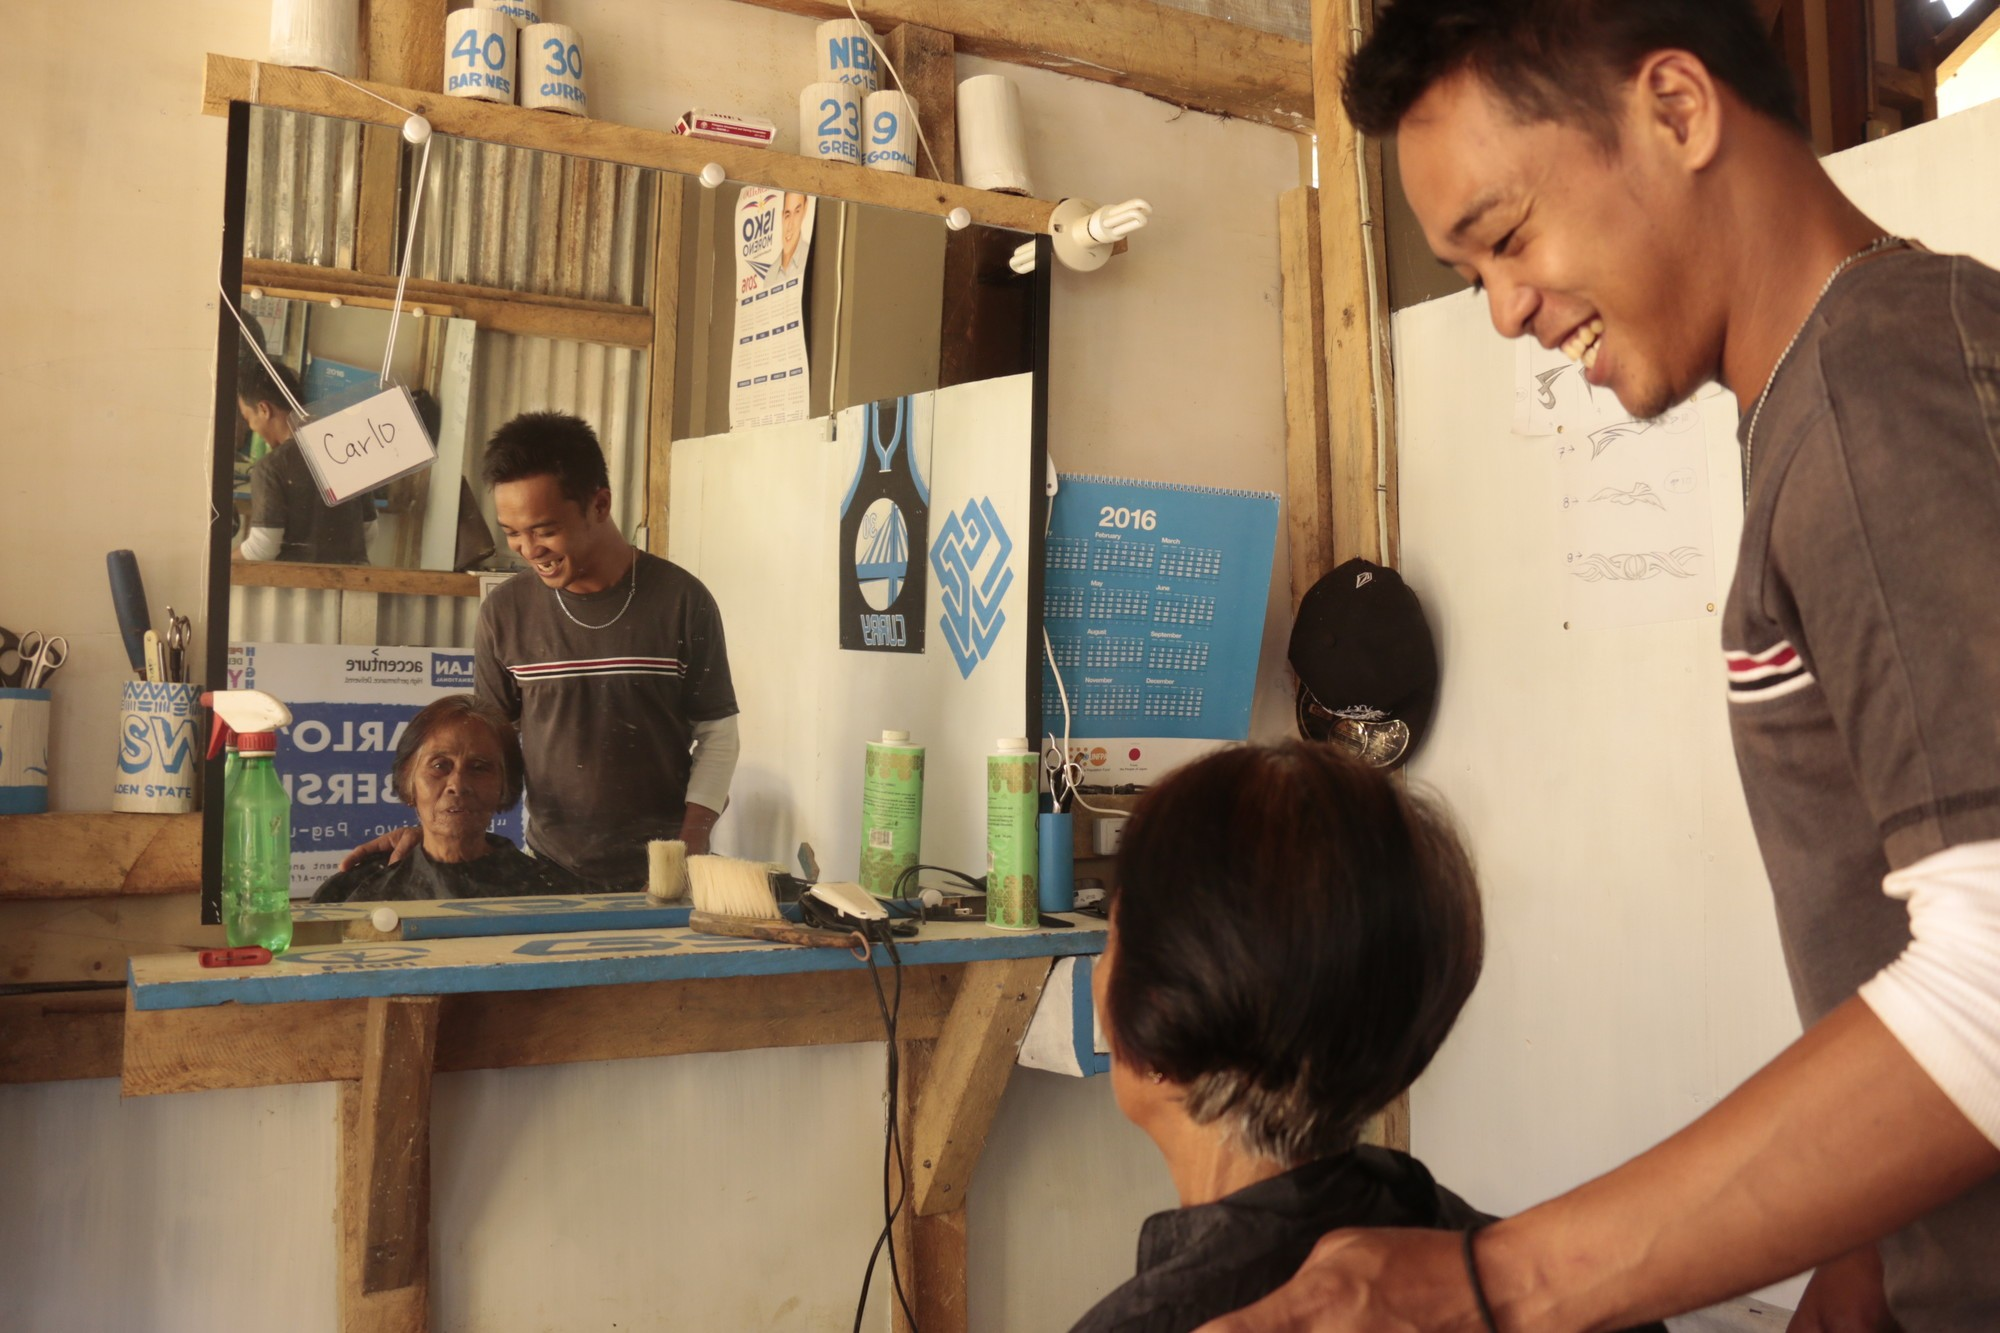 Carlo uses a Plan international grant to fund his hairdressers